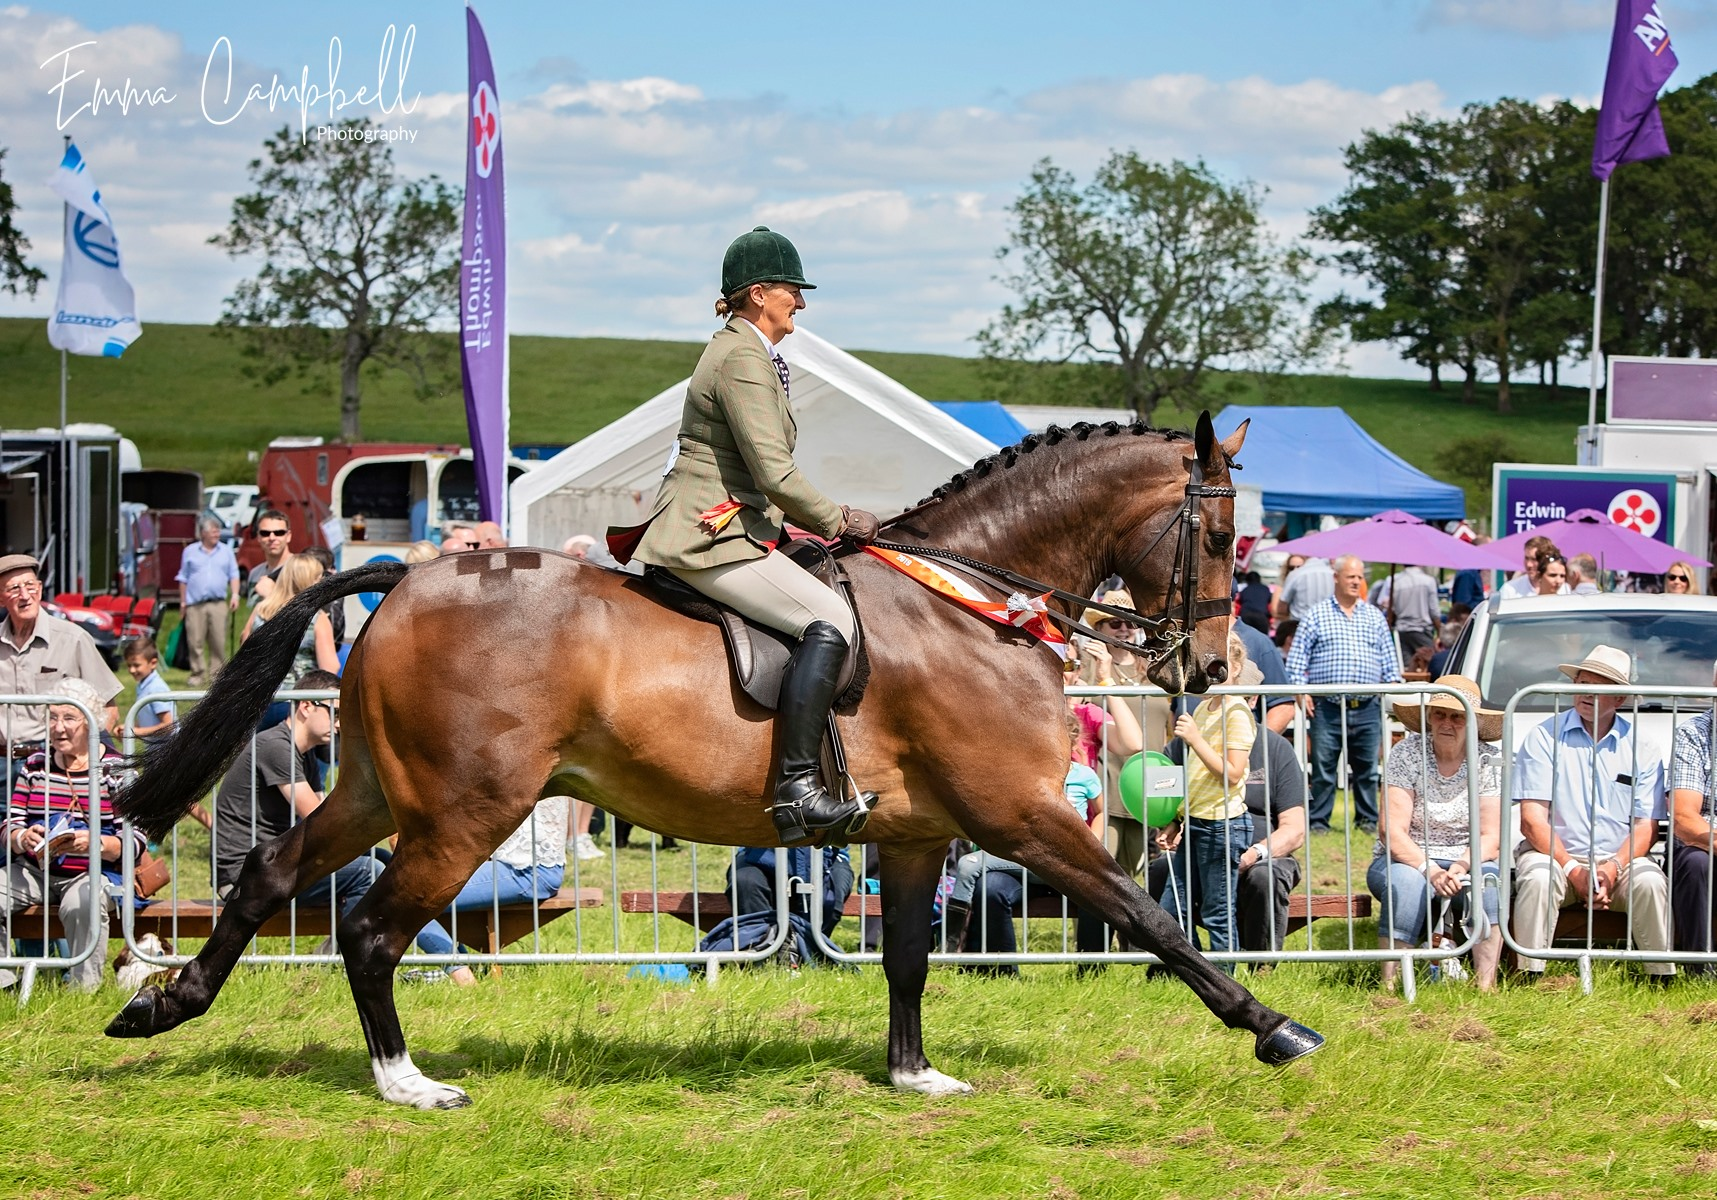 Skelton Show - Equestrian class 2019